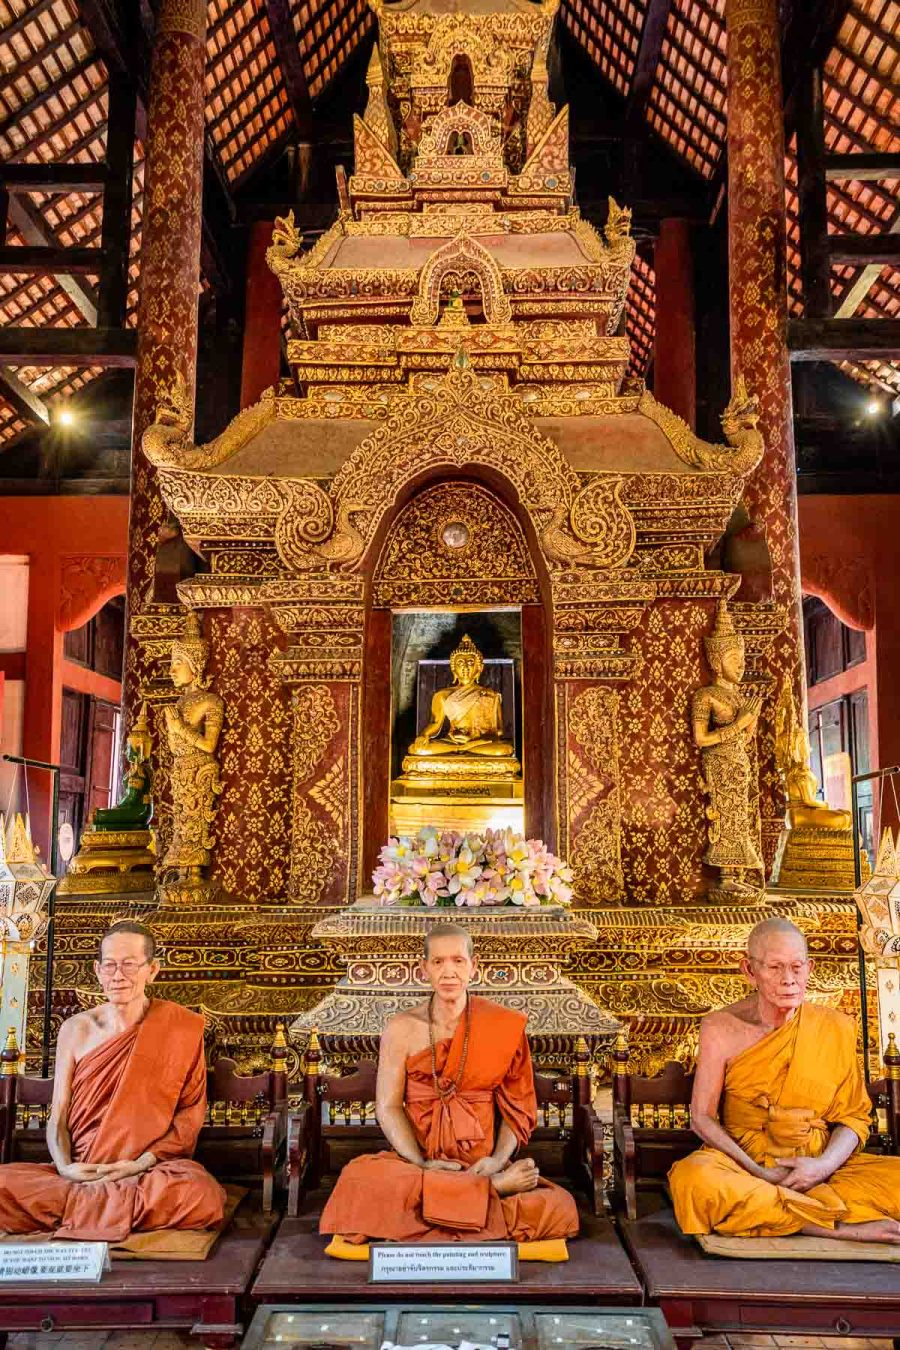 Monks made of vax sitting in front of a Buddha statue in Wat Phra Singh Temple in Chiang Mai